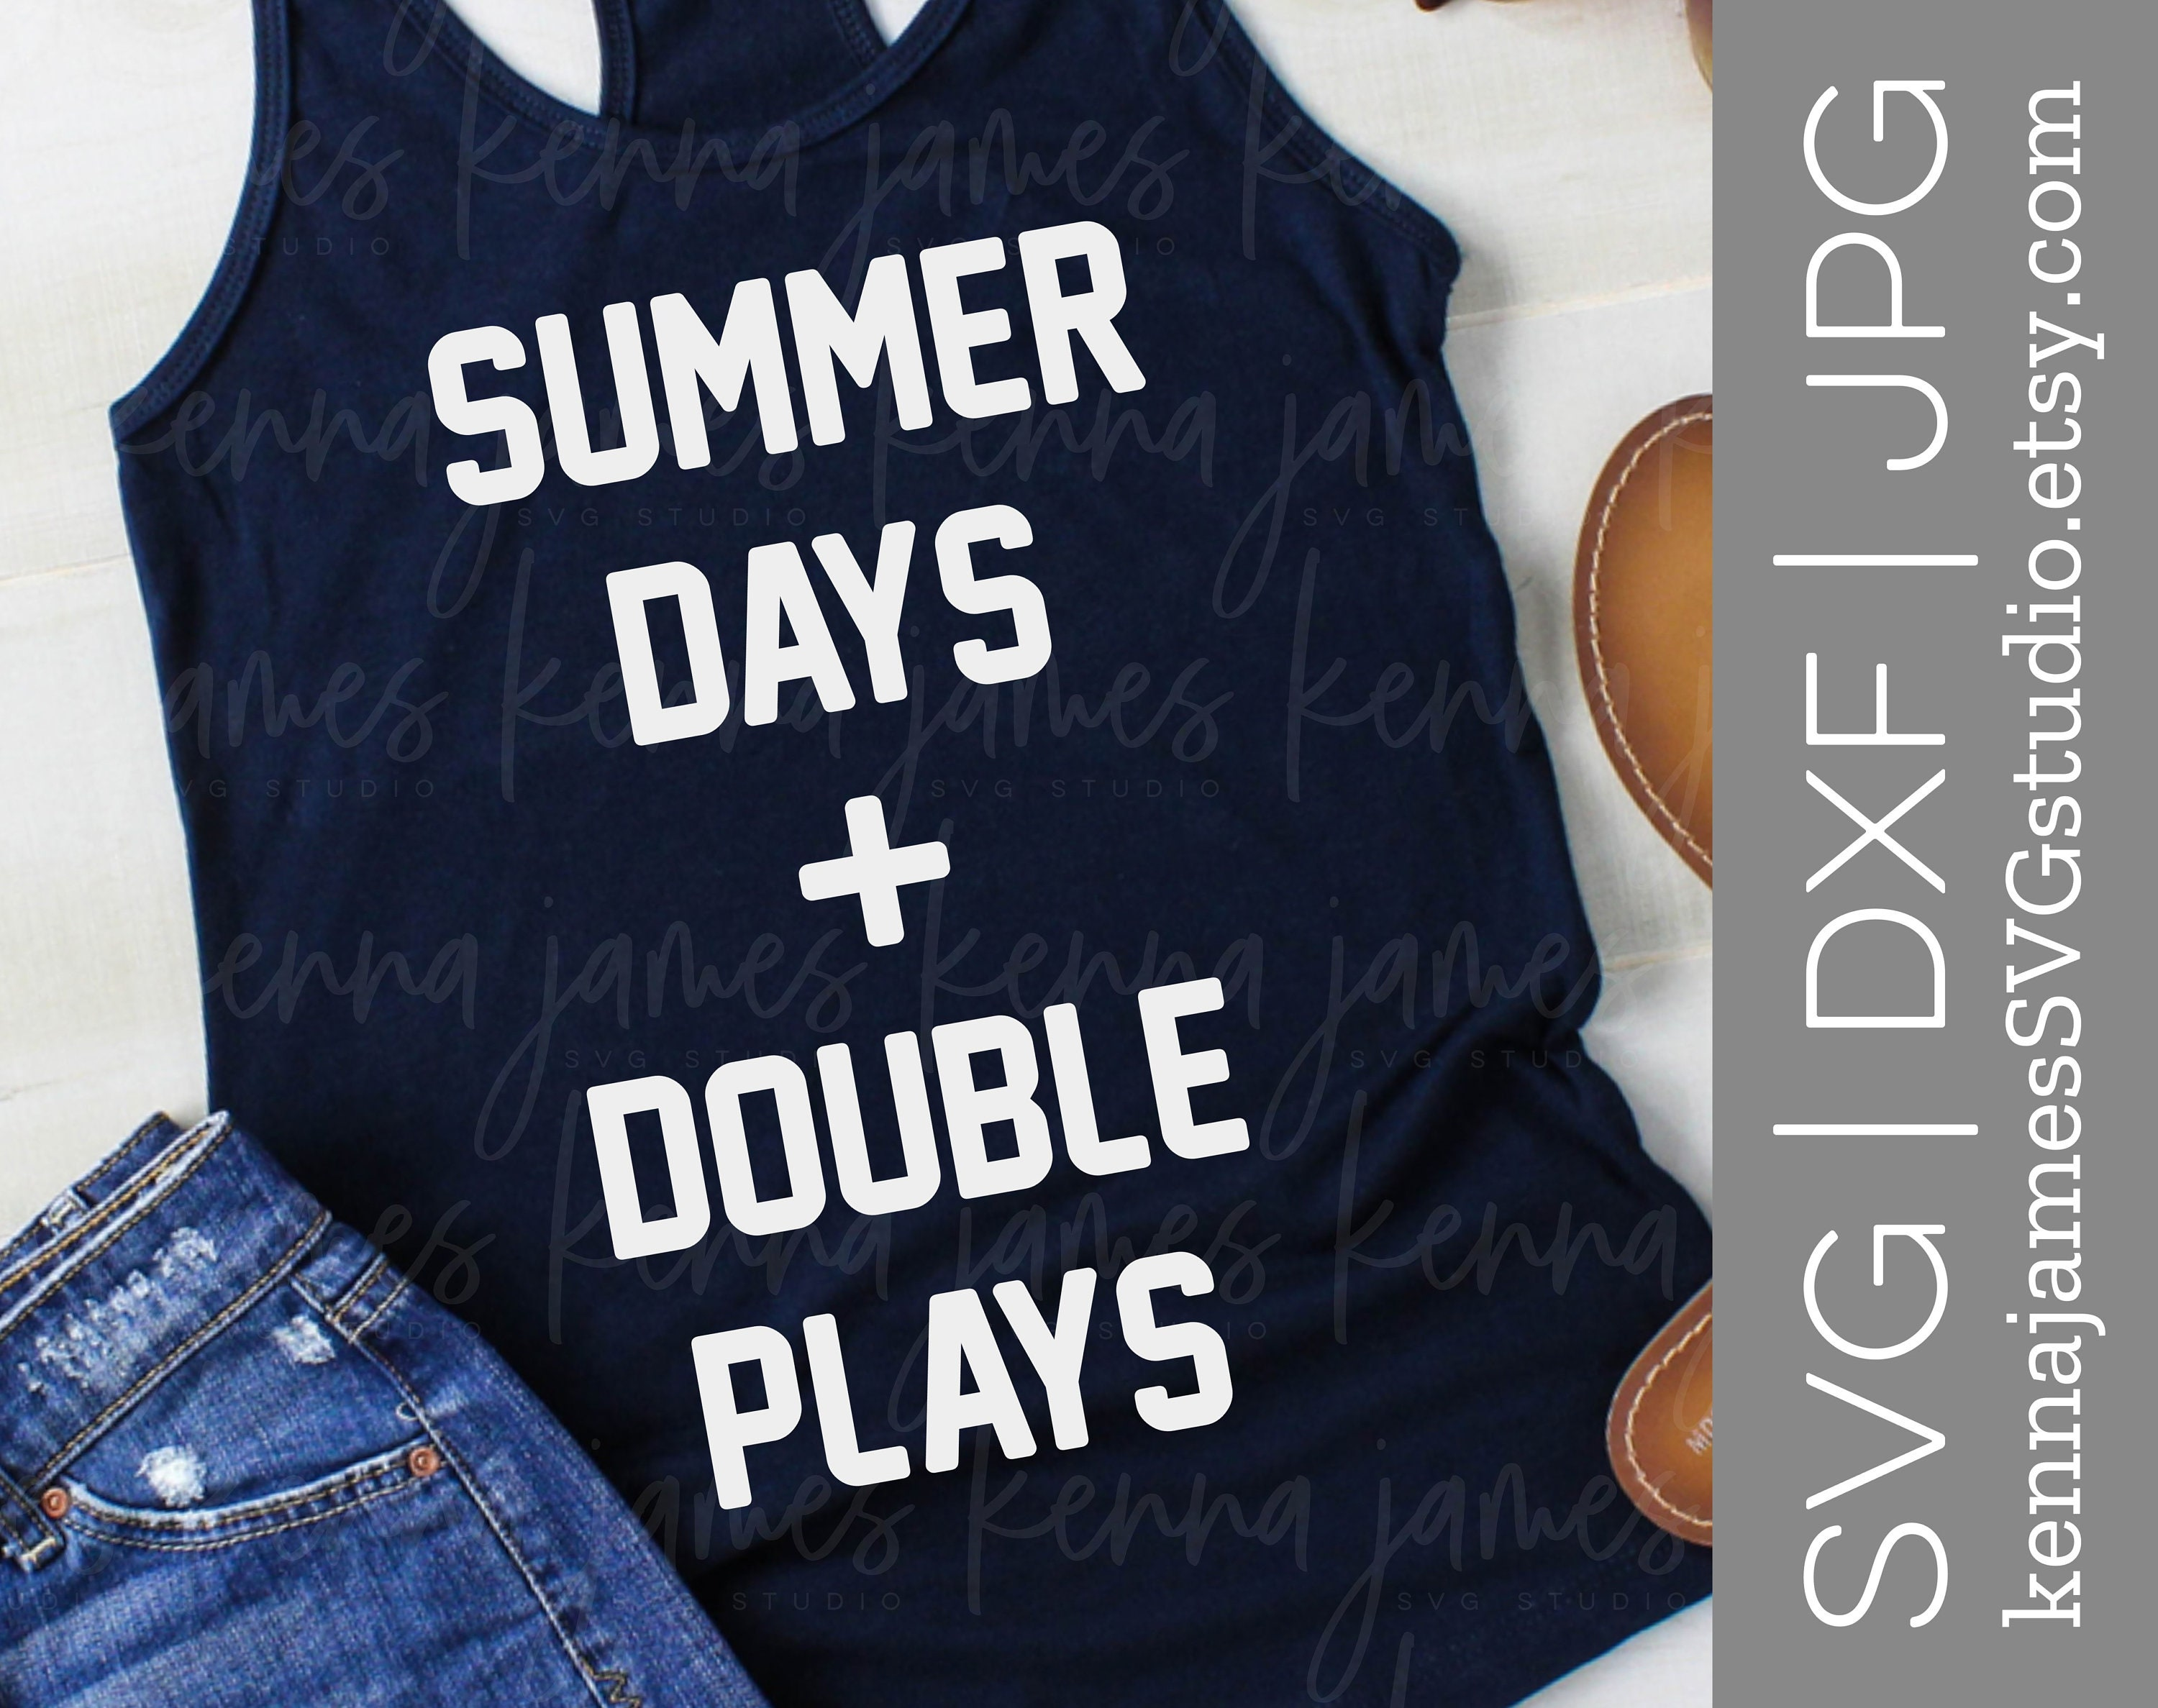 43ae6a98694 Summer Days And Double Plays svg Summer Days   Double Plays